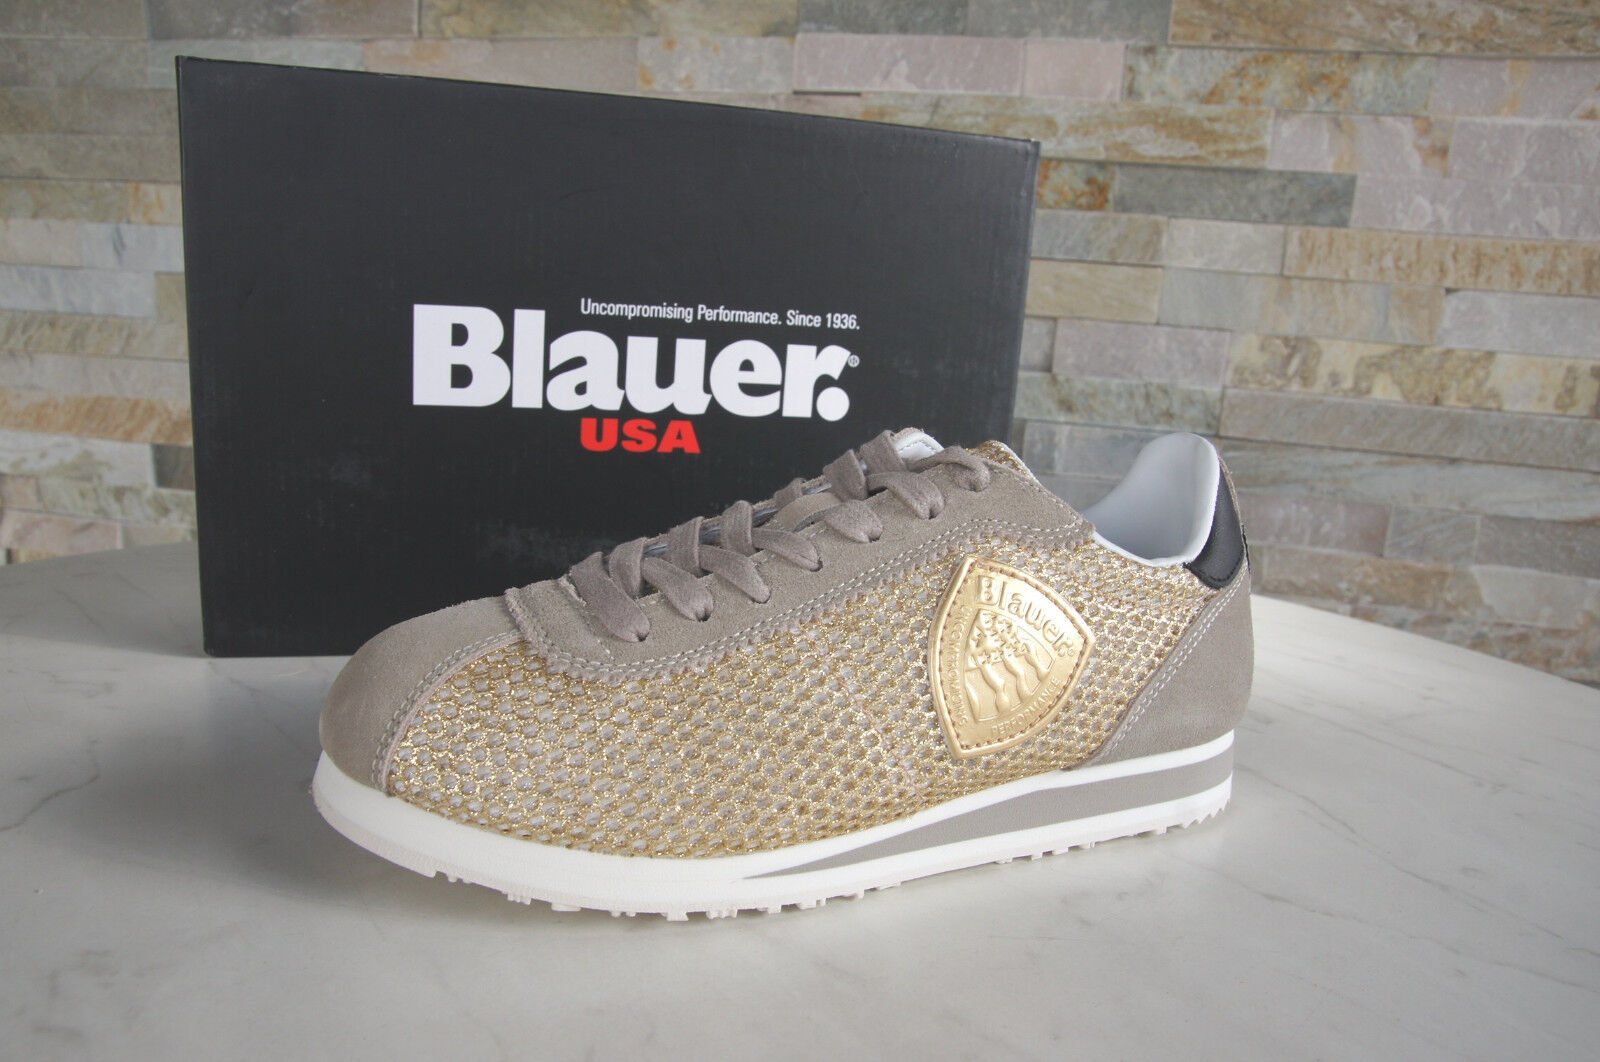 blueer USA 36 Sneakers Lace up shoes Bowling Beige gold New Previously